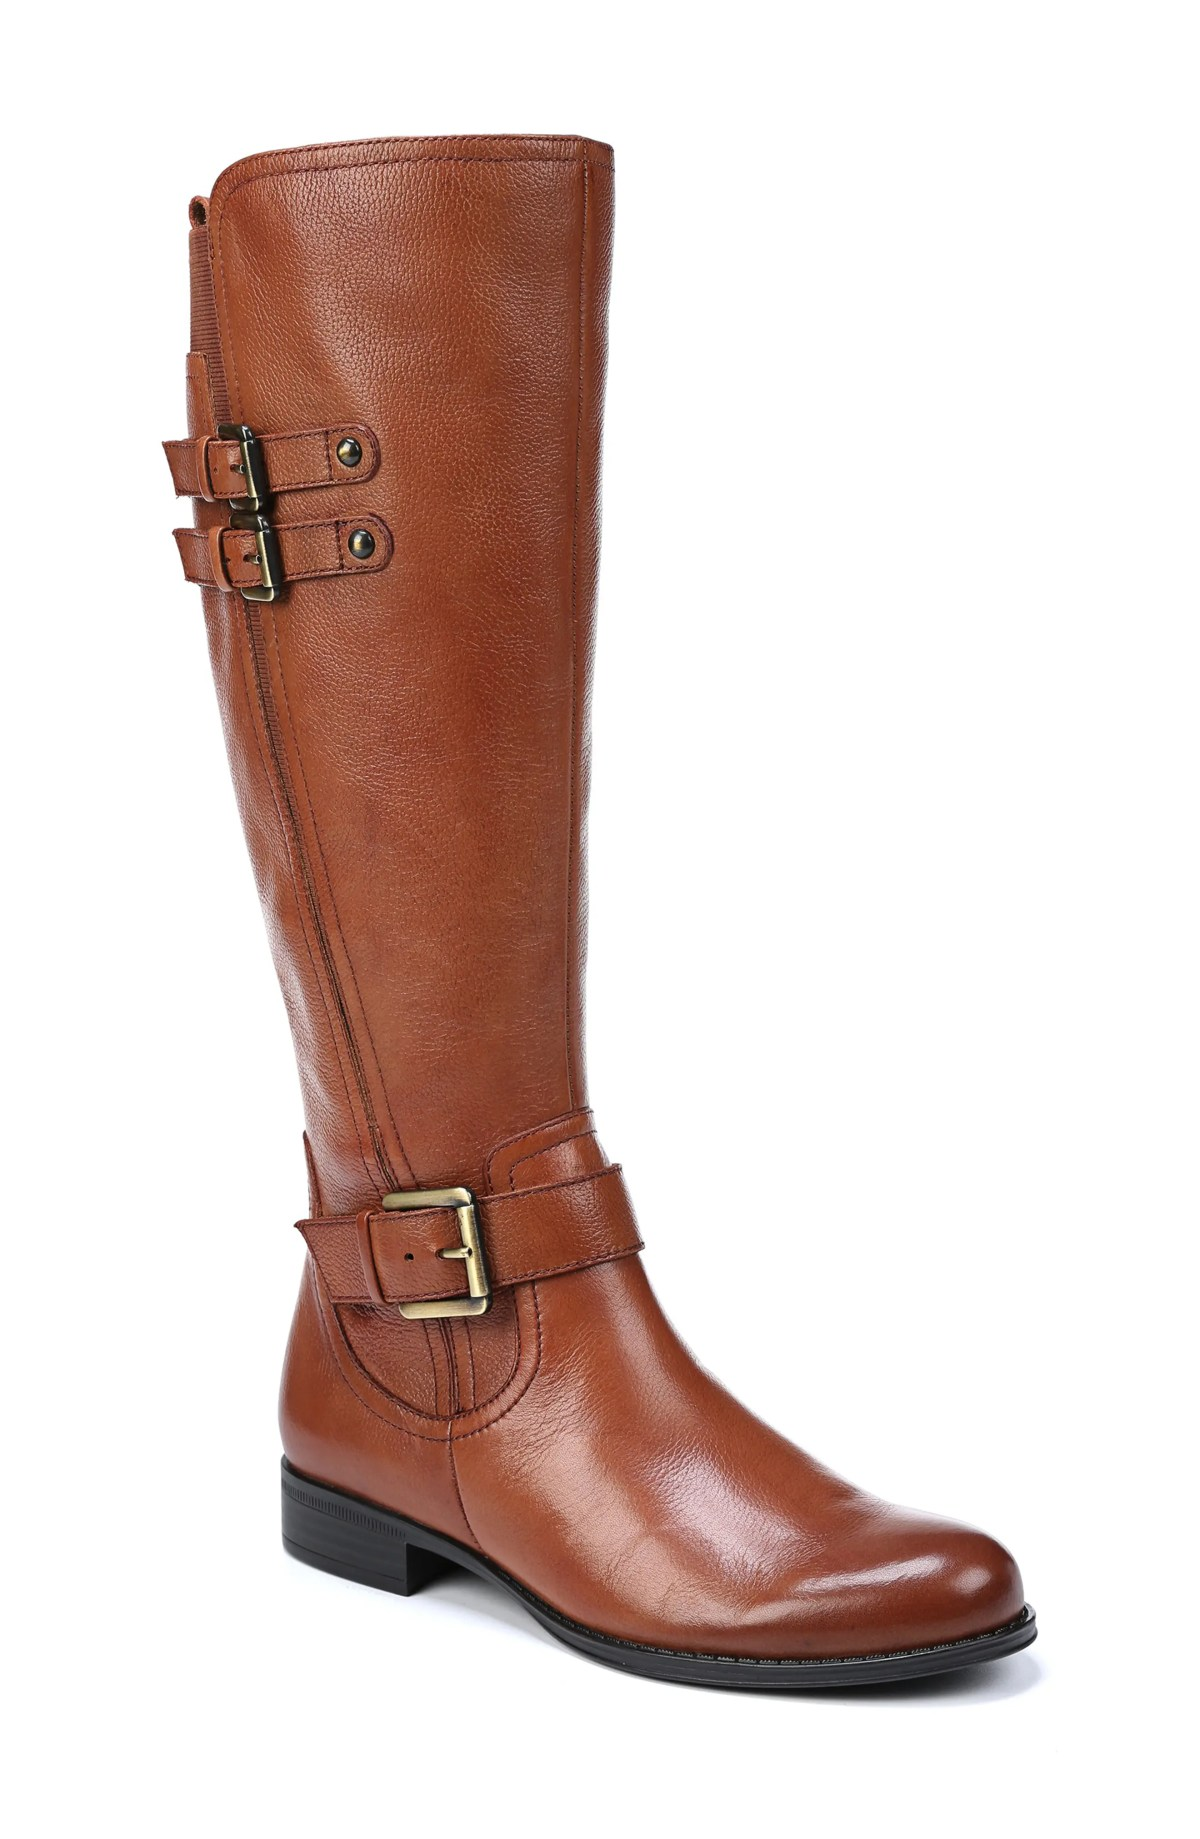 Jessie Knee High Riding Boot,                         Main,                         color, BANANA BREAD LEATHER